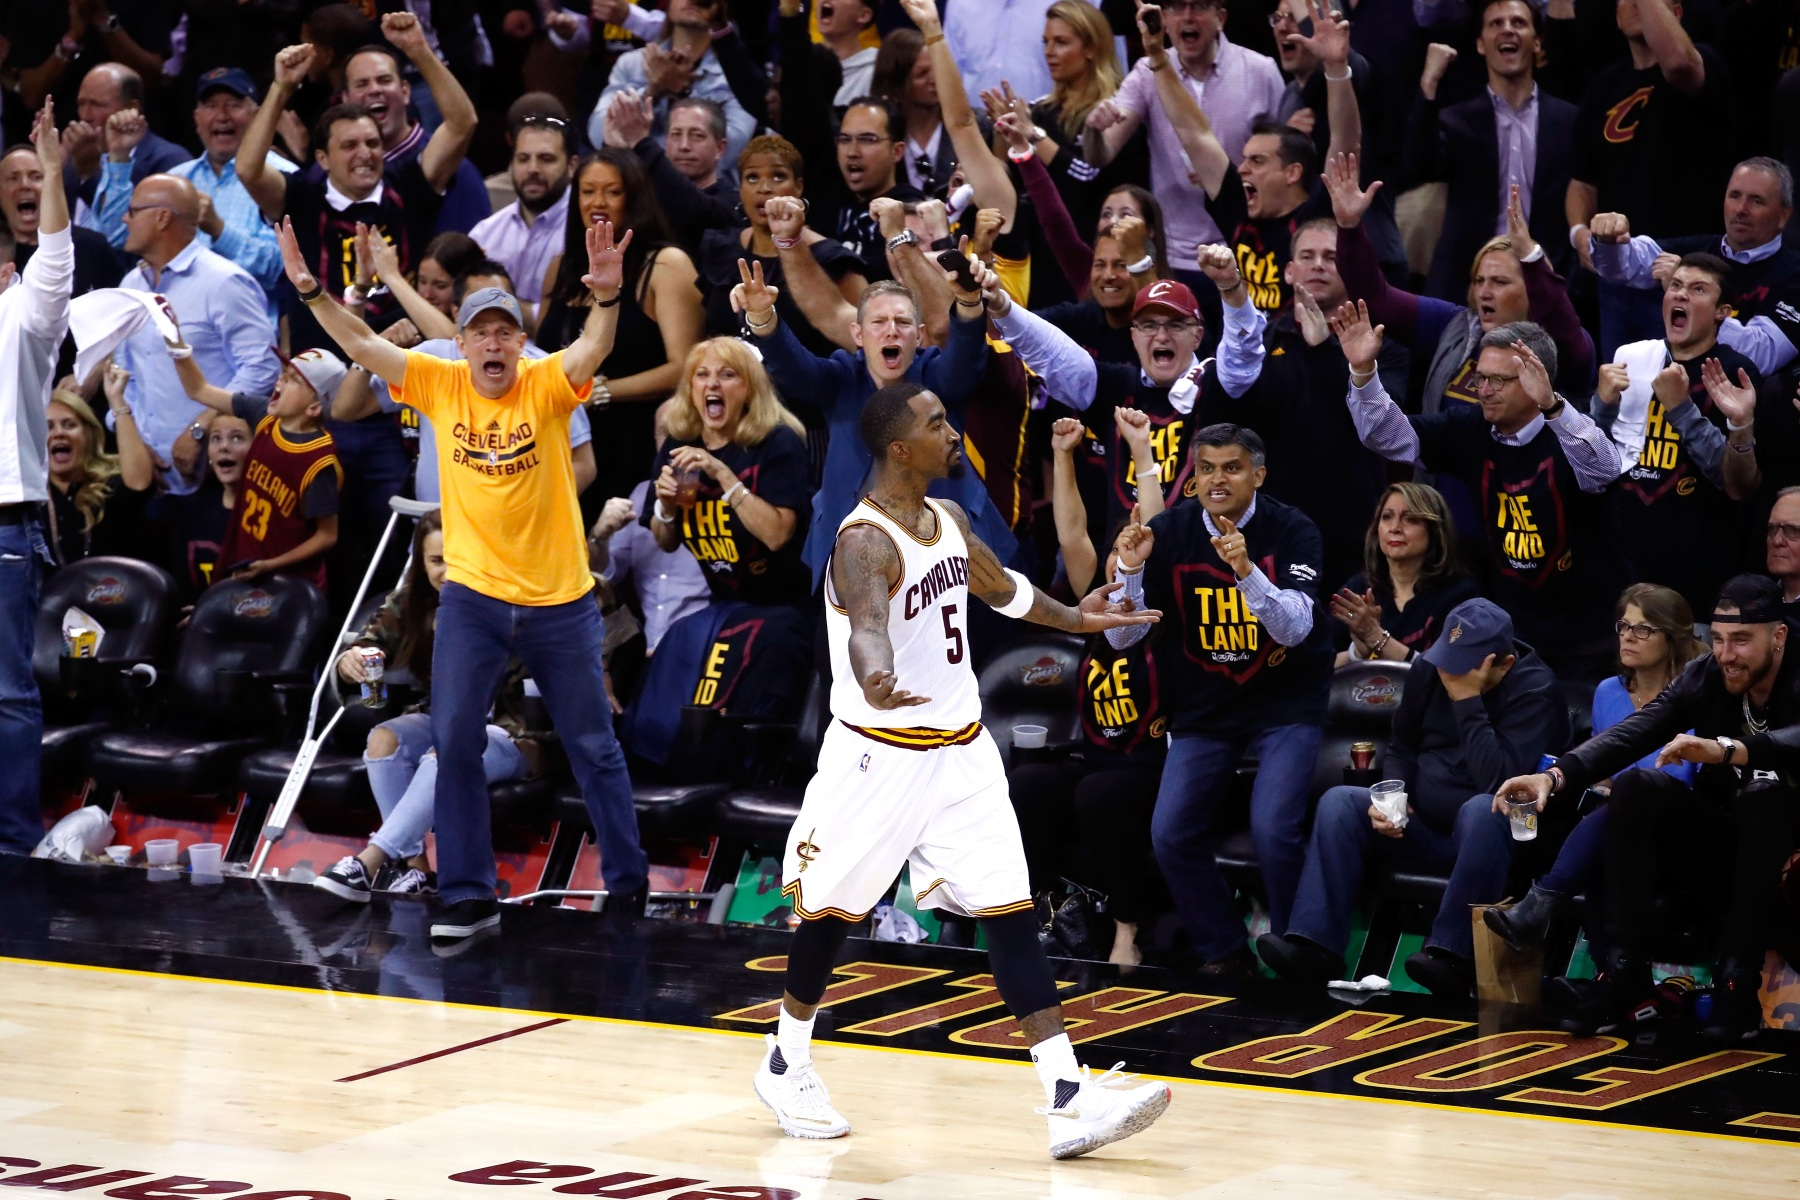 J.R. Smith celebrates during game 3 of the 2017 NBA Finals